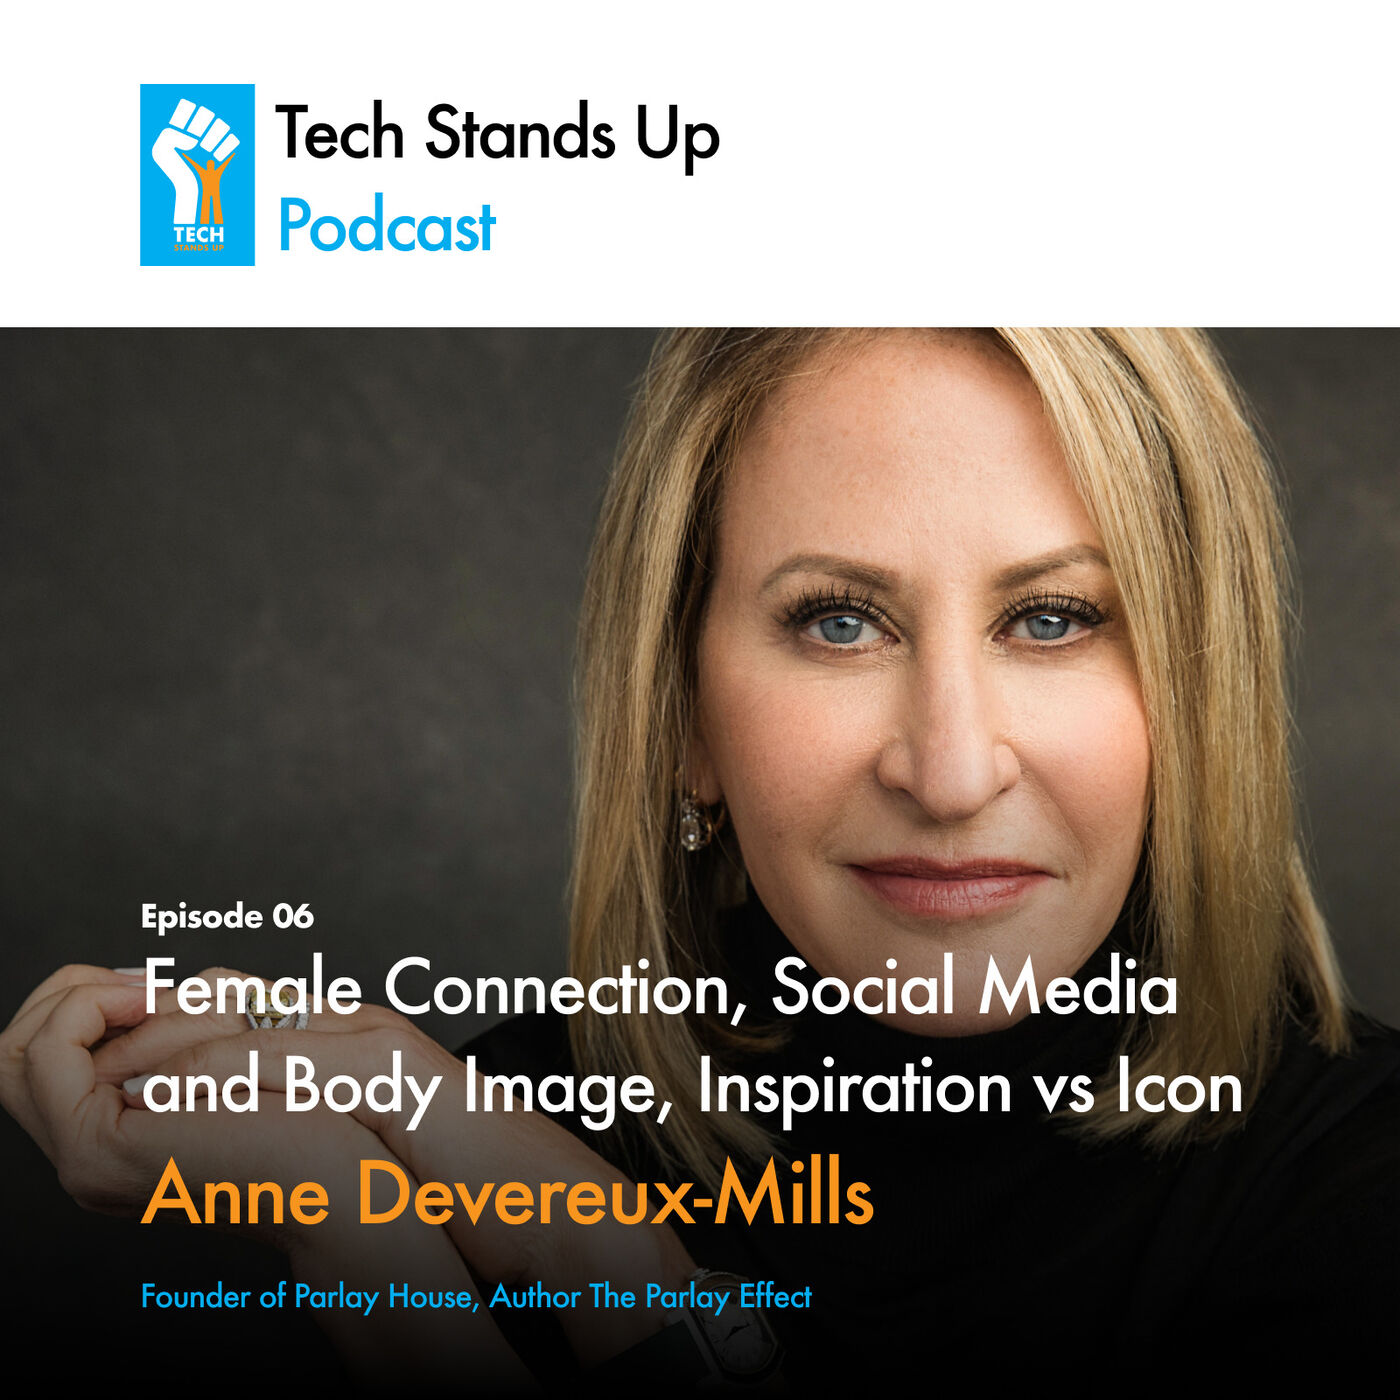 Anne Devereux-Mills: Female Connection, Social Media and Body Image, Inspiration vs Icon